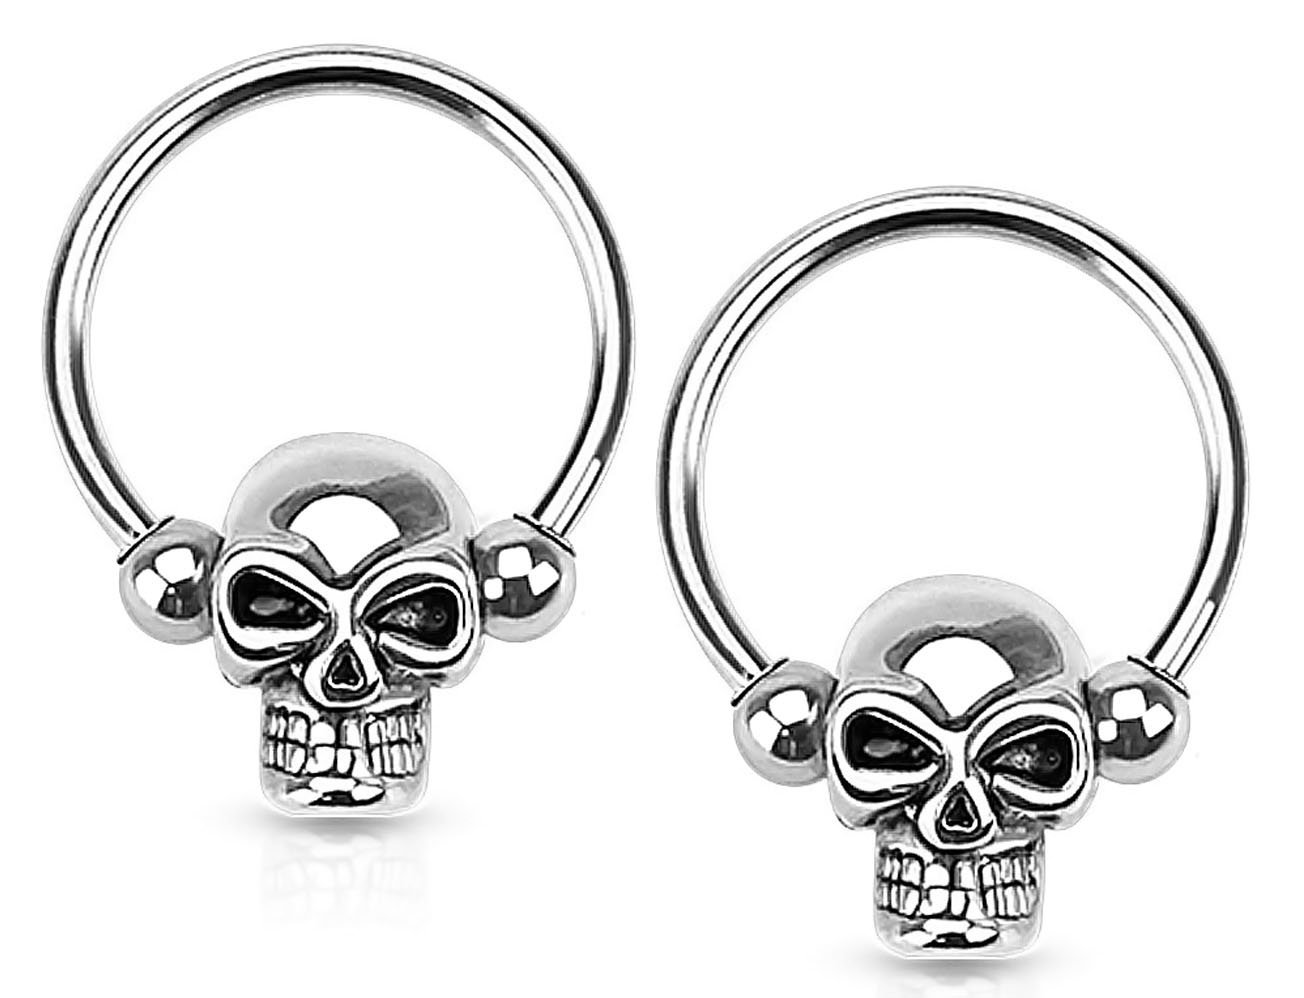 Forbidden Body Jewelry Set of 14G 12mm Surgical Steel Skull CBR Hoops for Ear Lobes/Cartilage/Nipples by Forbidden Body Jewelry